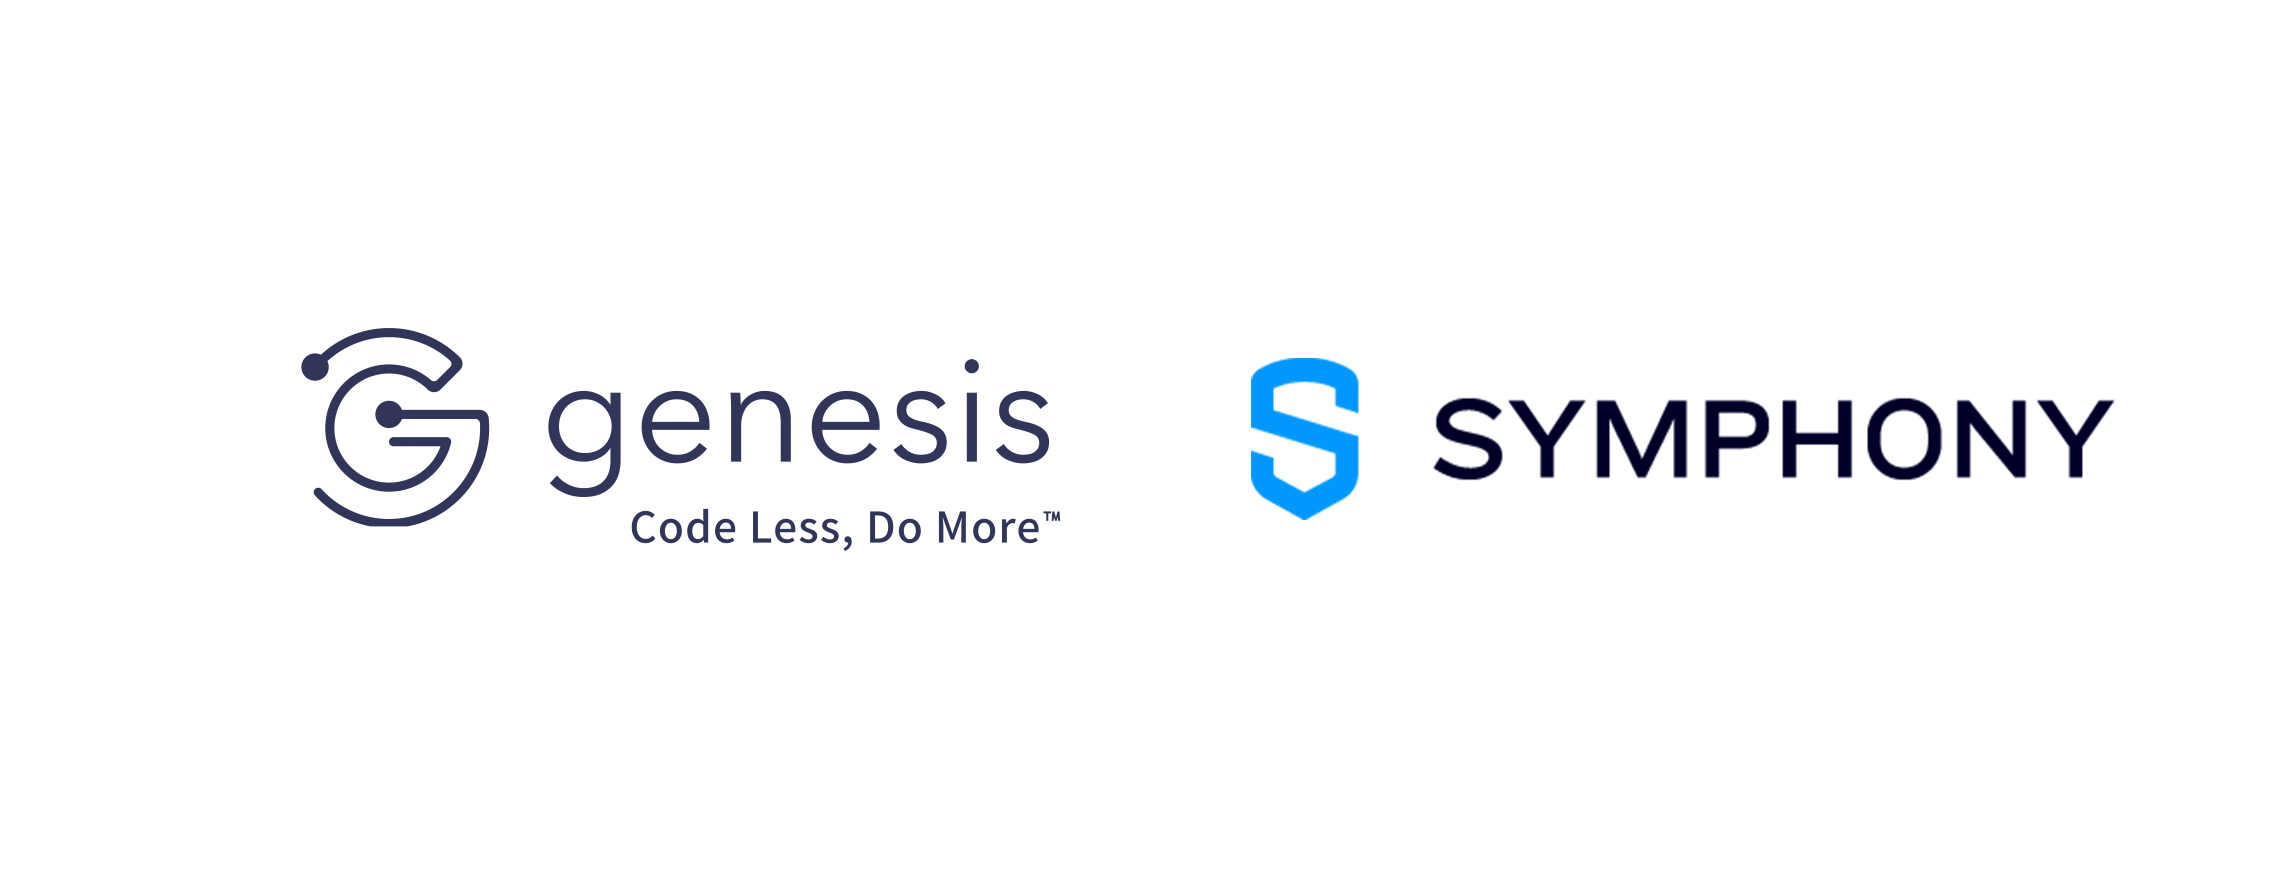 Genesis & Symphony to Accelerate Digitisation and Connectivity for the Global Financial Markets Community 